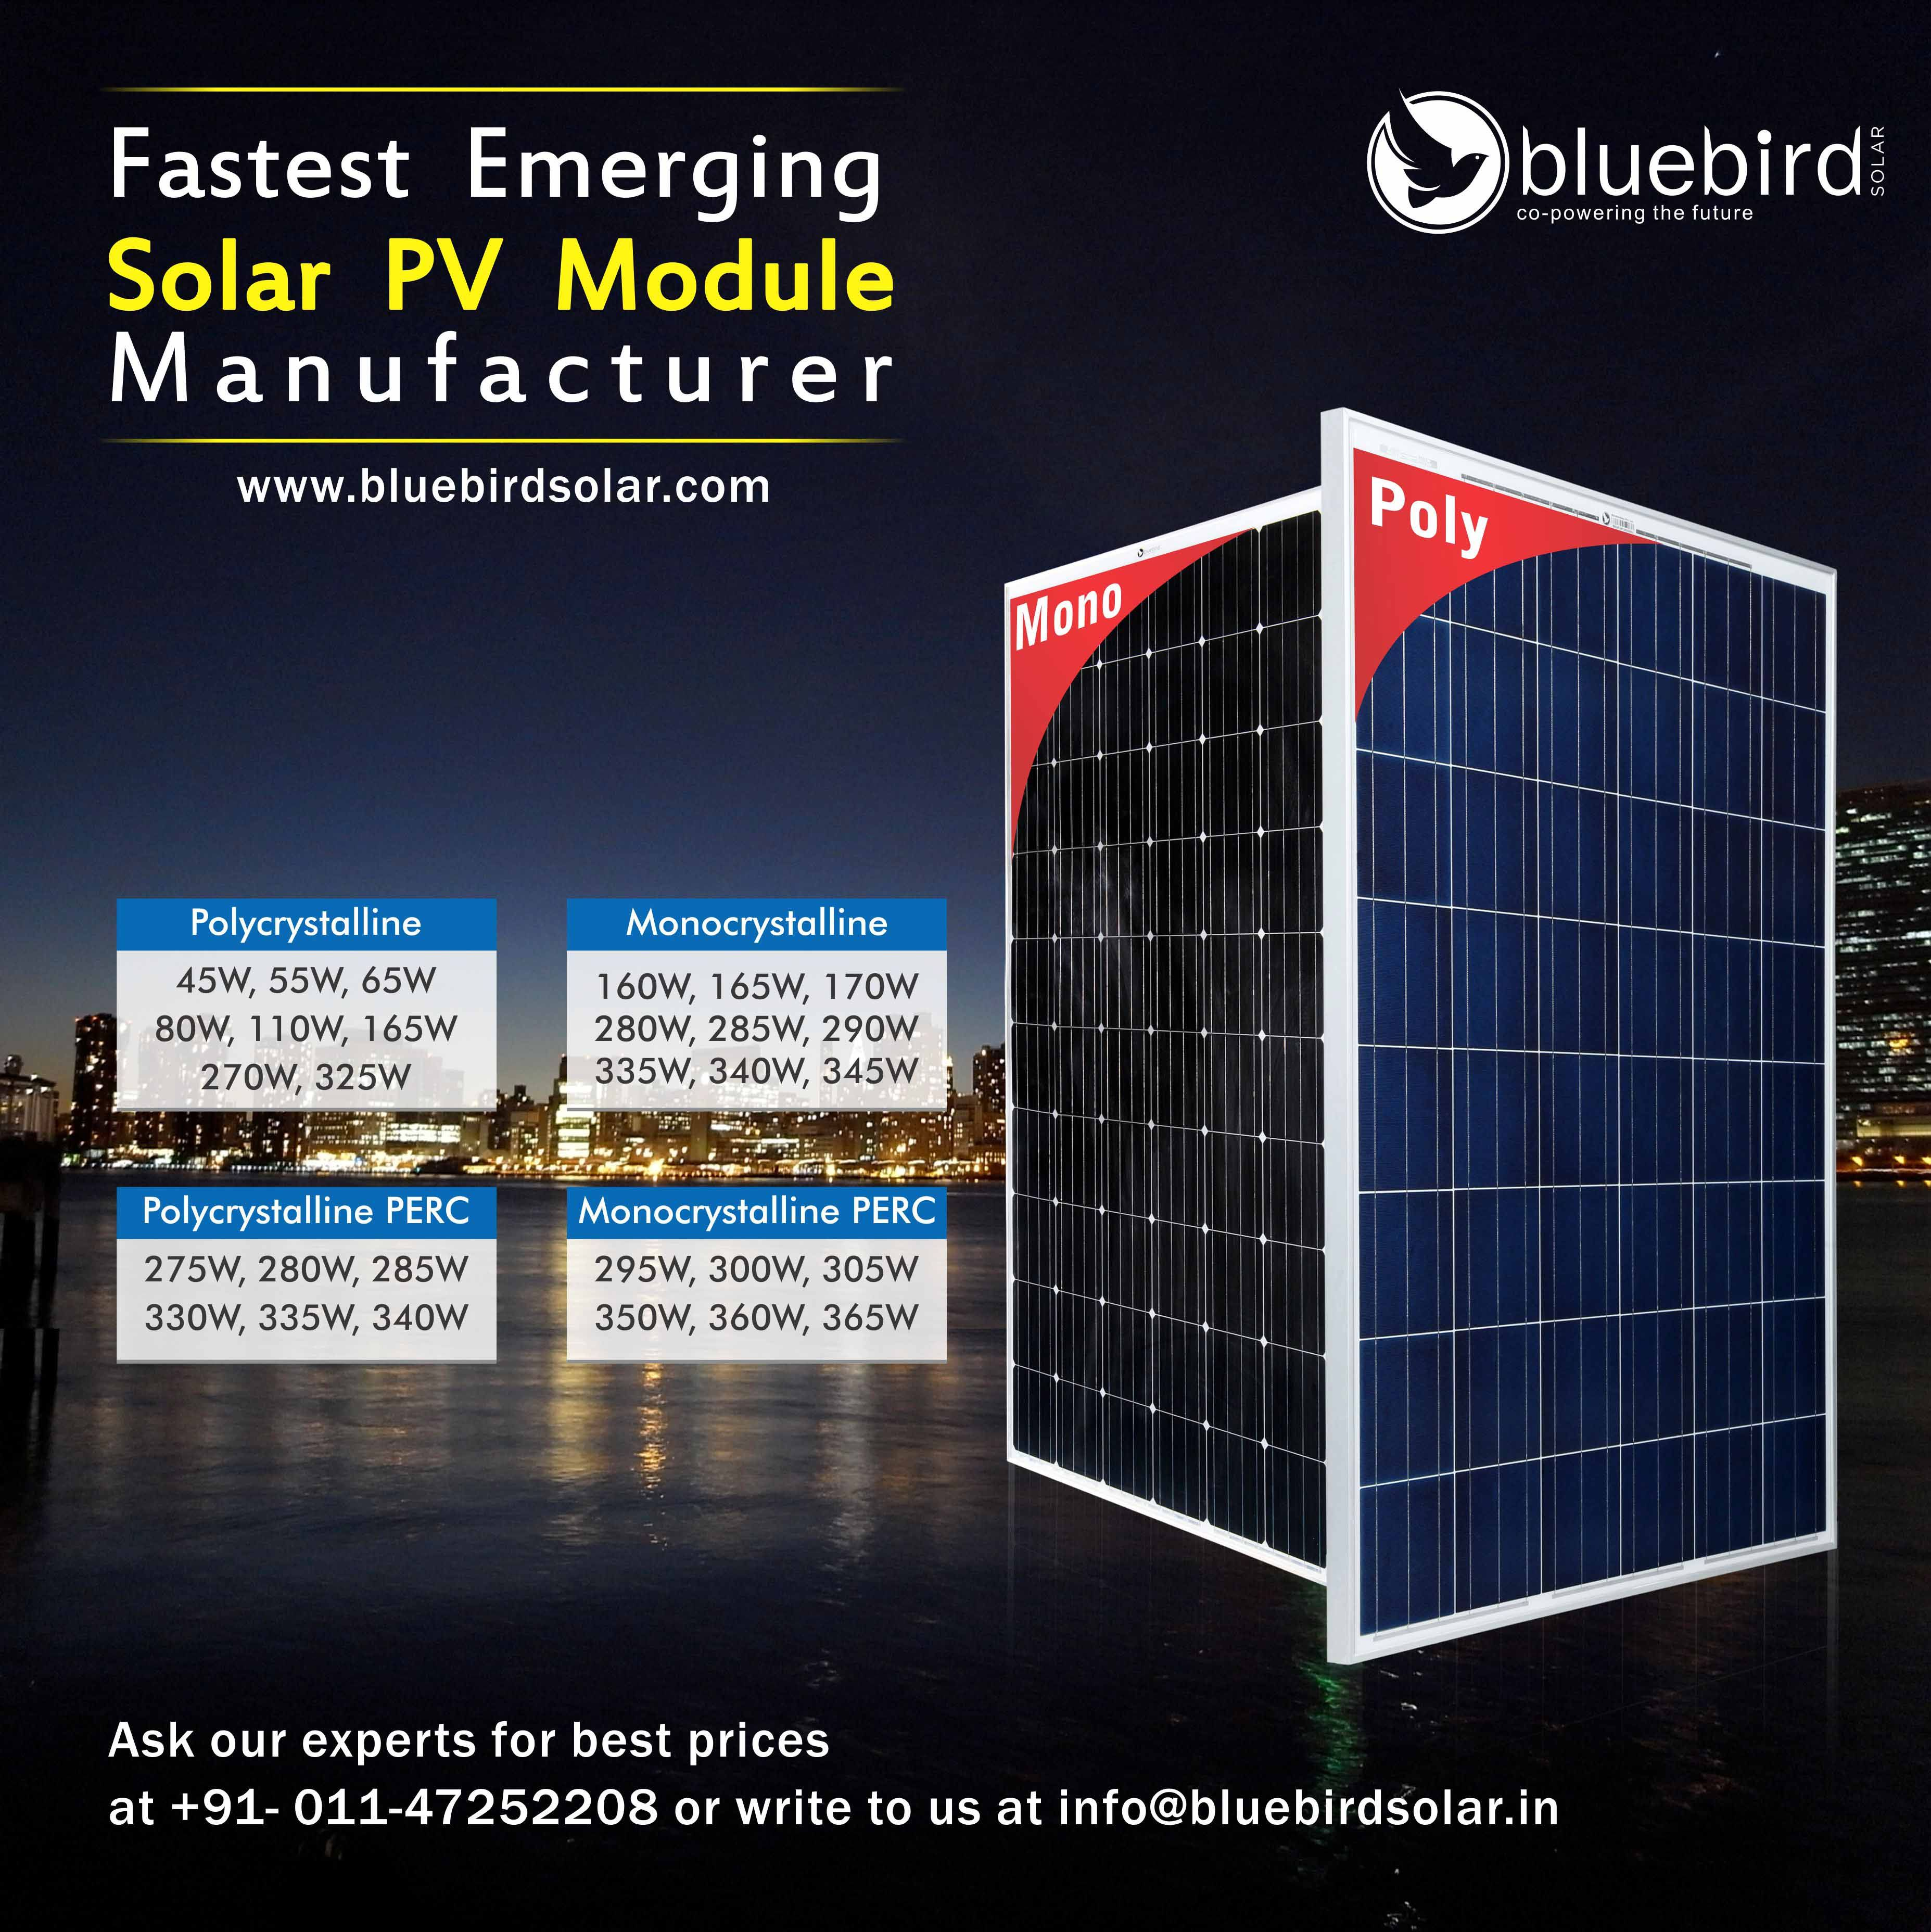 Get A Wide Range Of Solar Pv Modules From Bluebird Solar For More Information Visit Us At Www Bluebirdsolar Com Or Solar Panel Manufacturers Solar Pv Solar